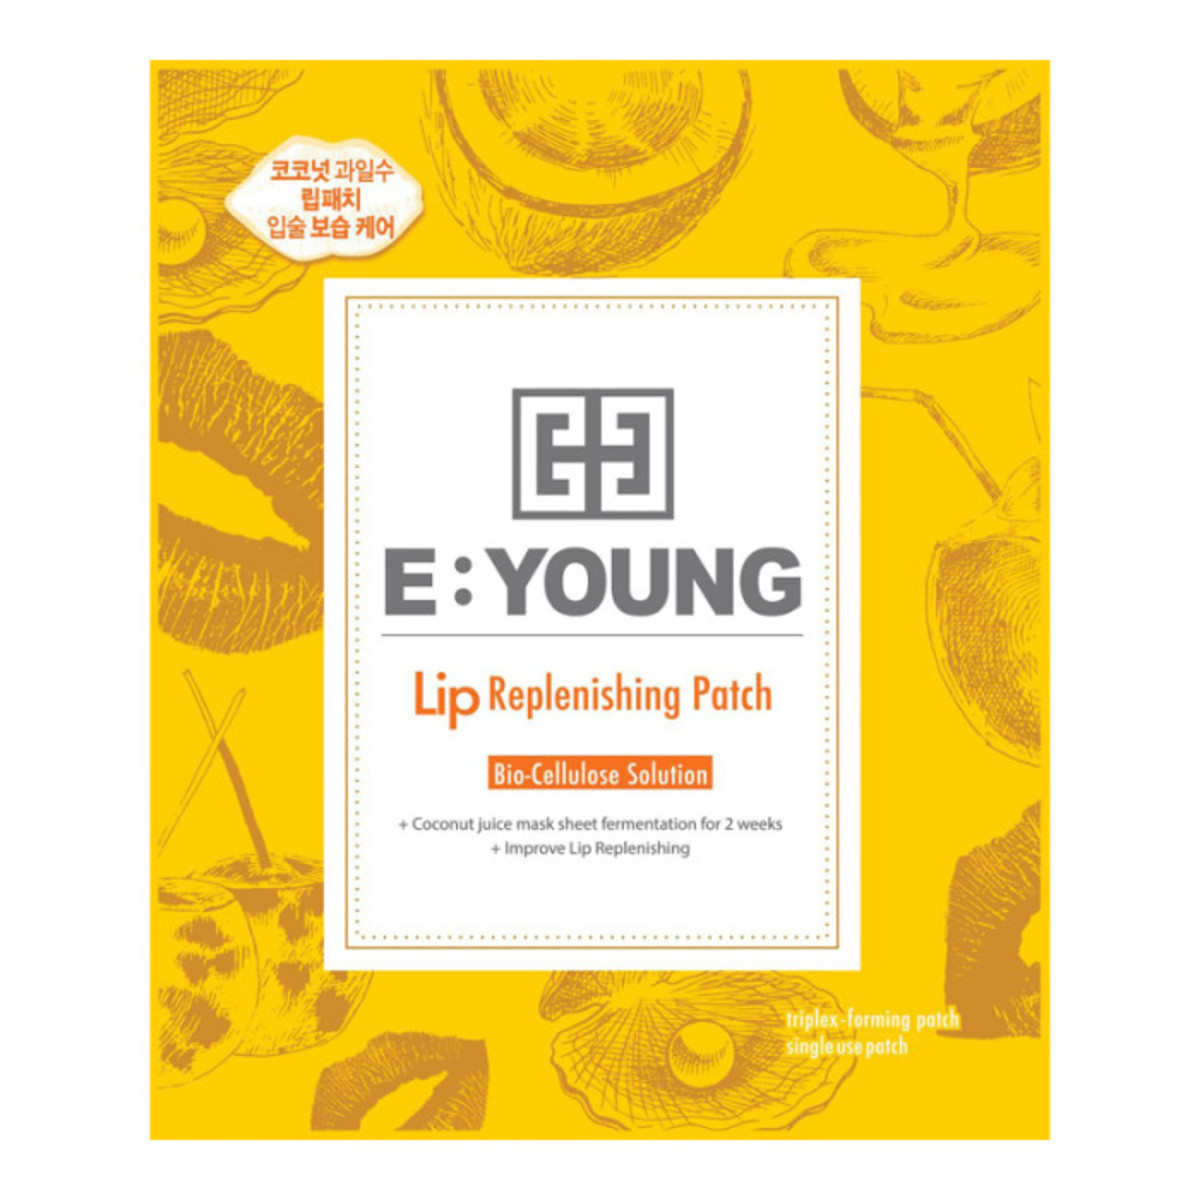 E:YOUNG Lip Replenishing Patch (5pcs)  (Expiry Date: 08/2019)